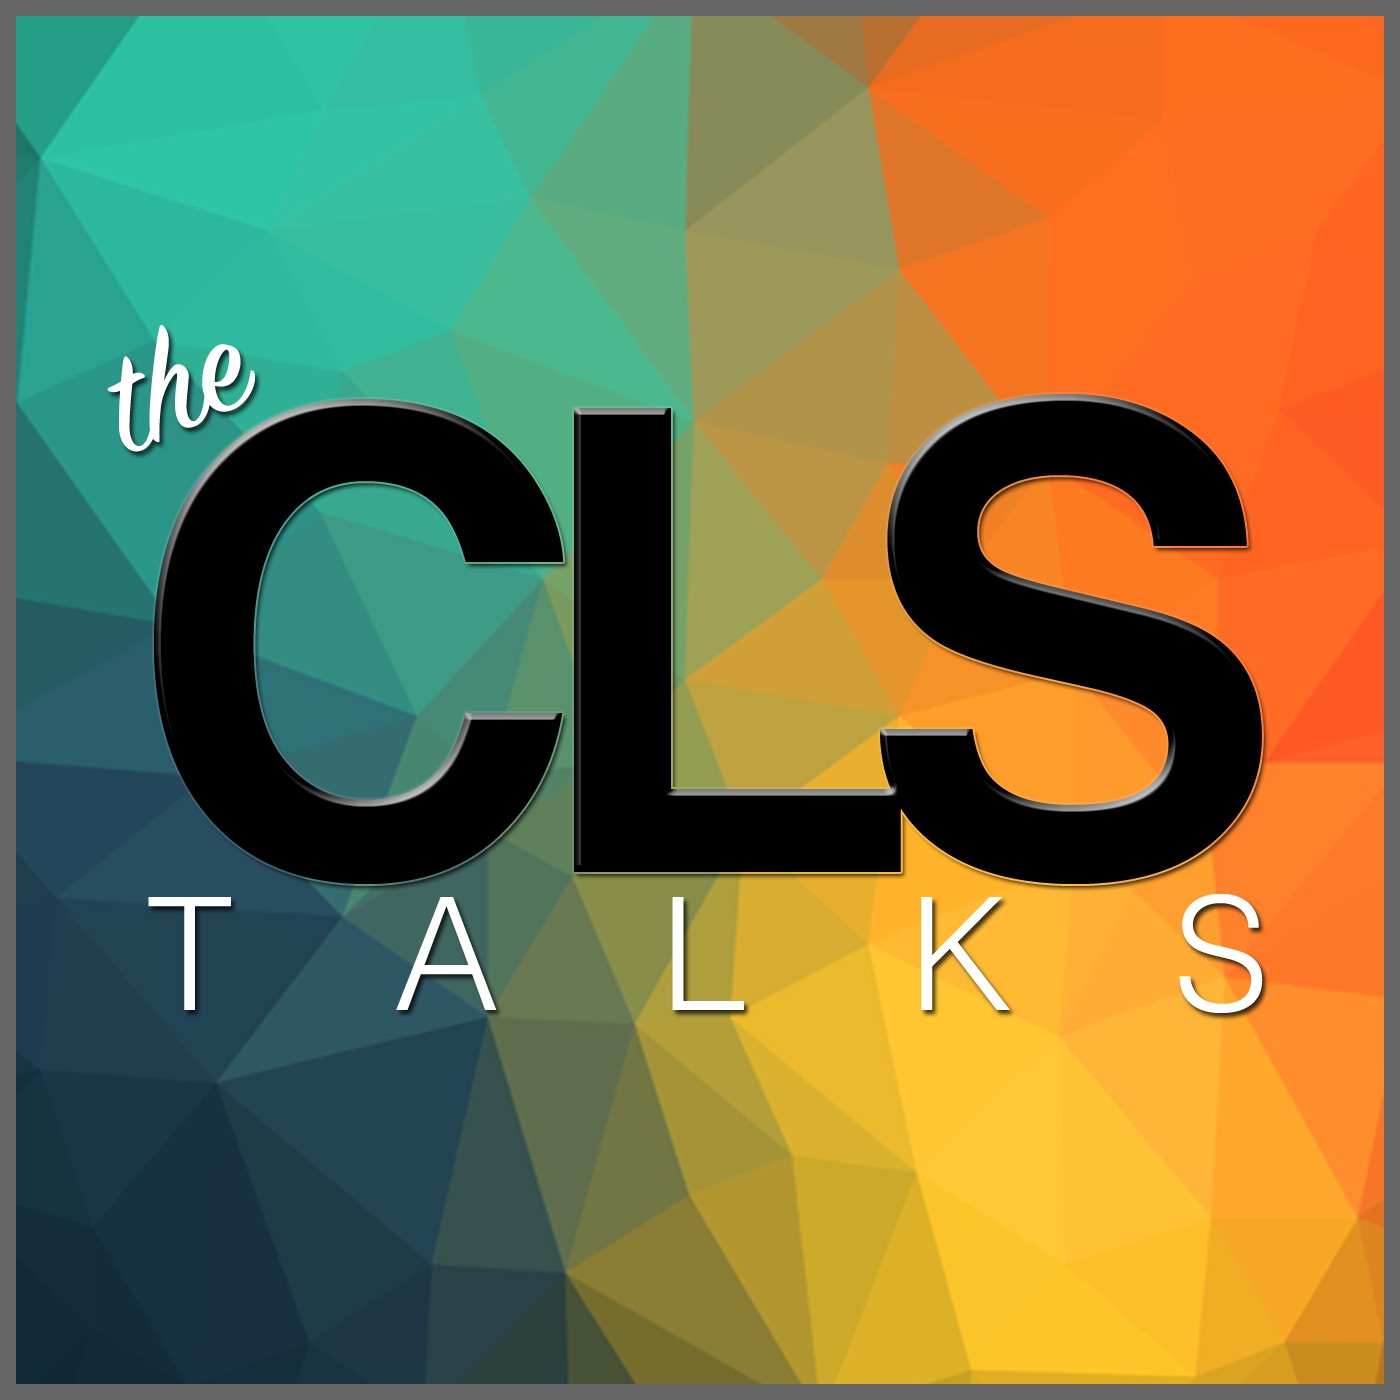 The CLS Talks